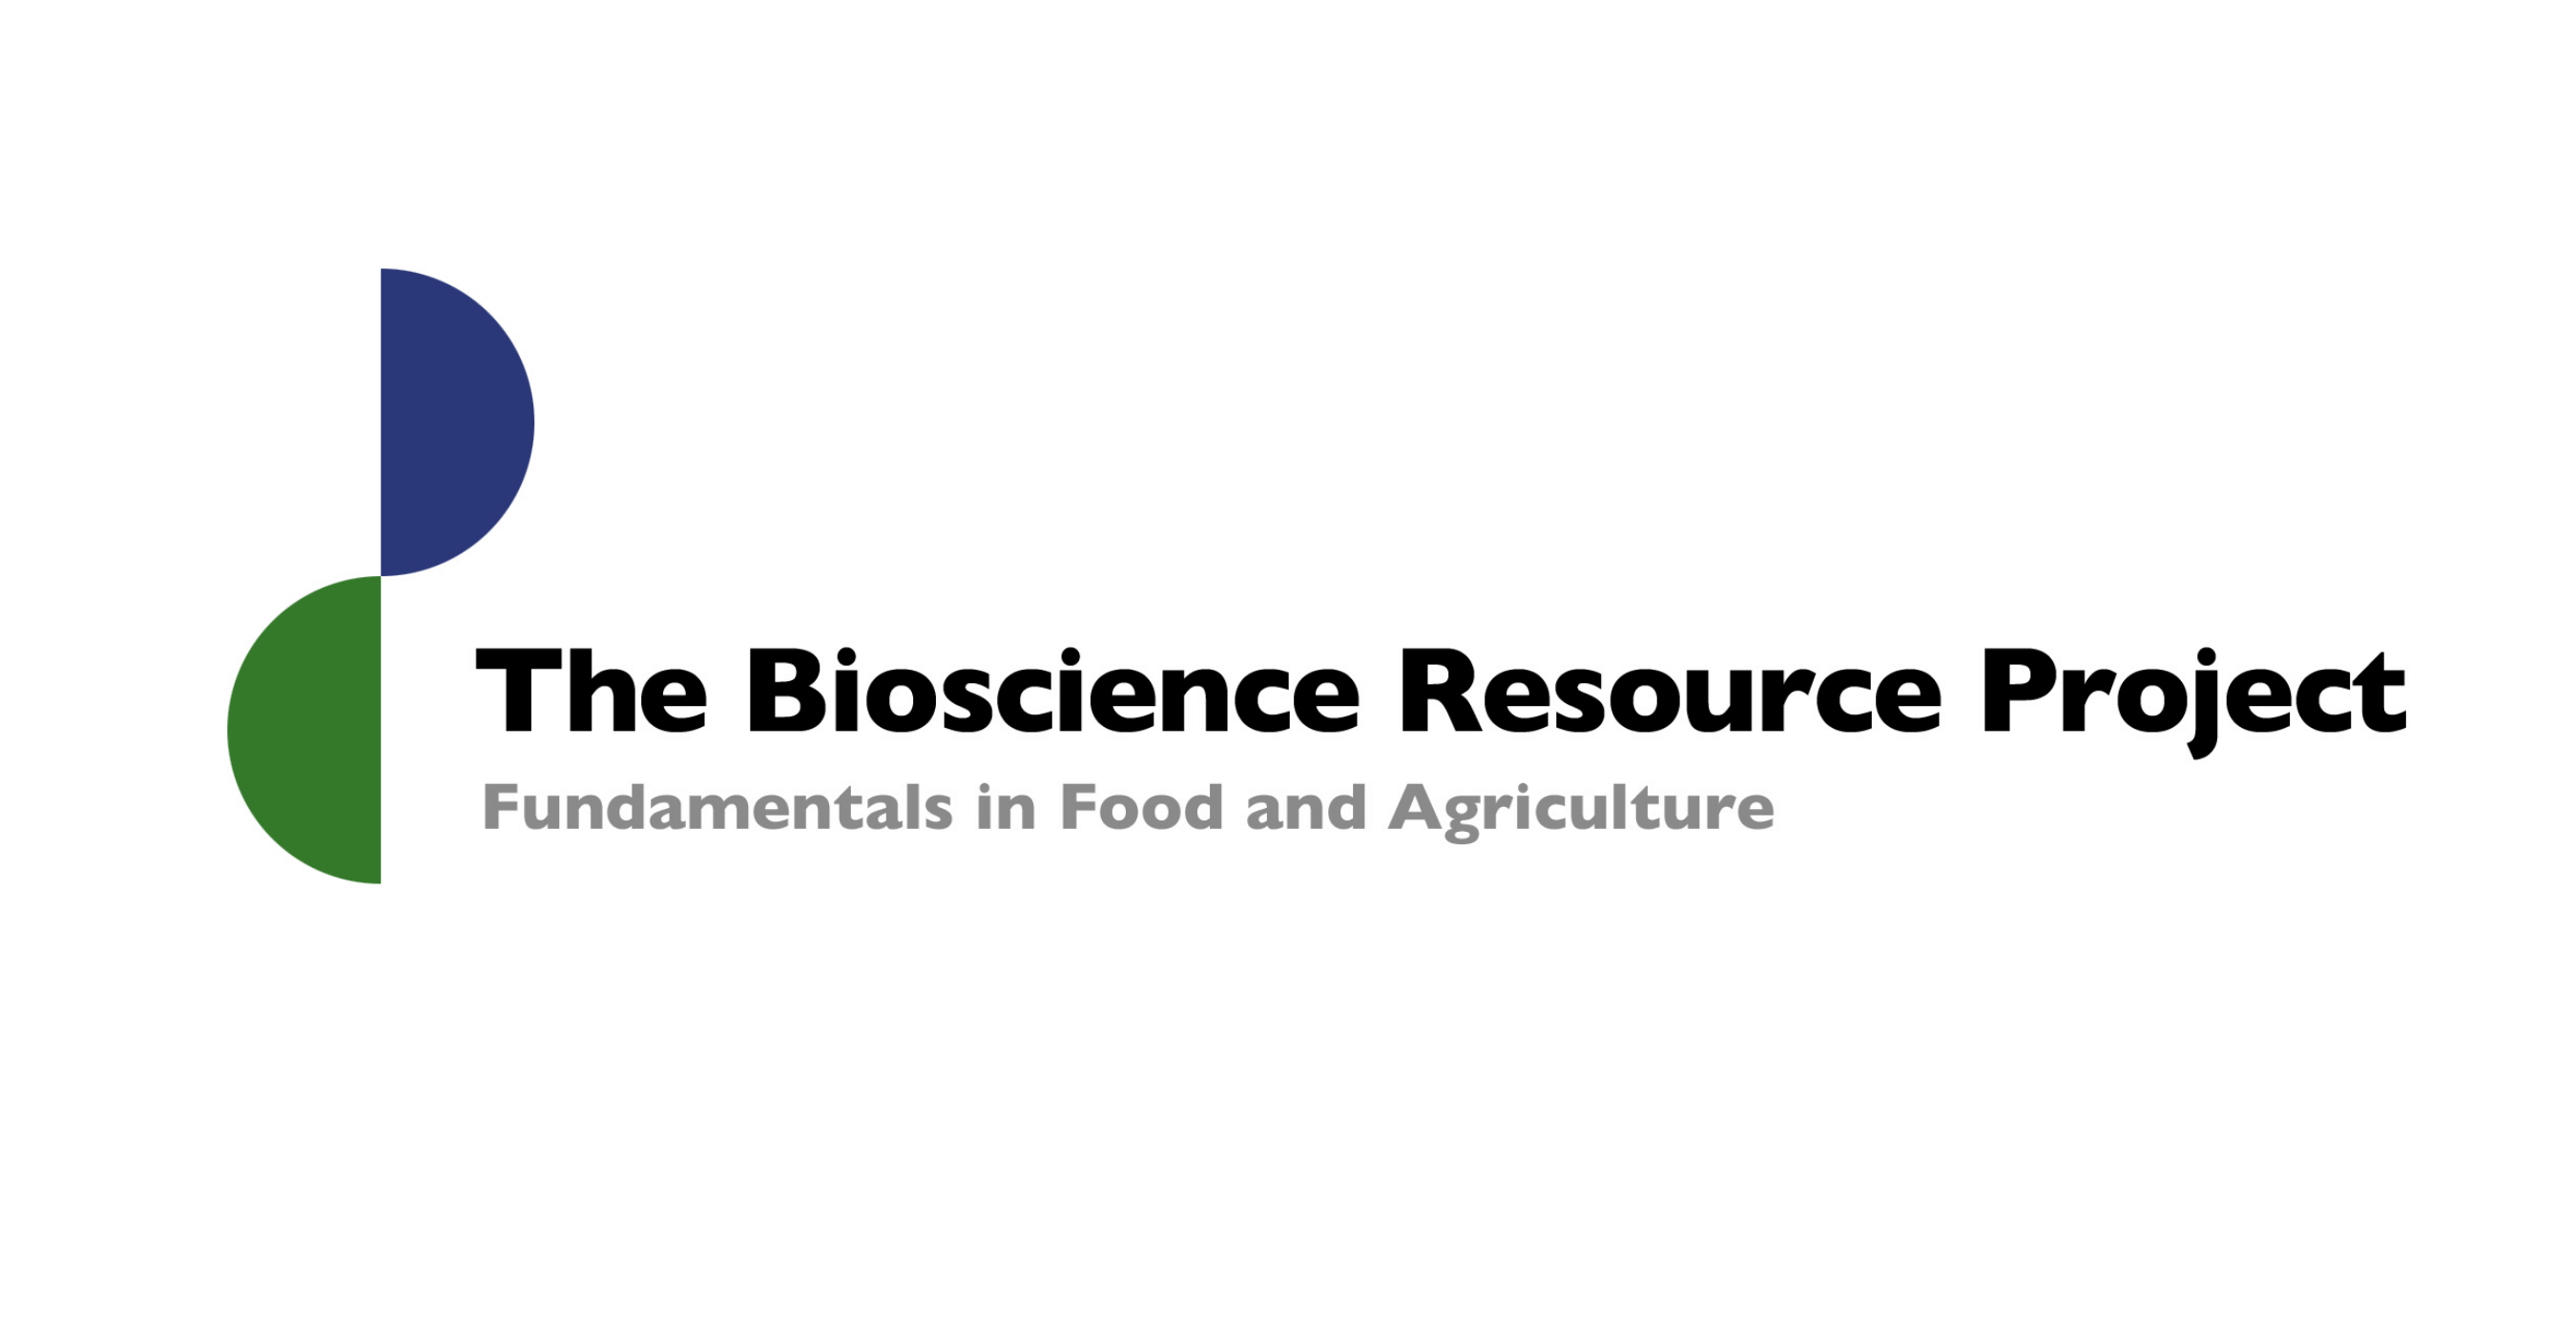 Bioscience Resource Project: Anti-GMO activist group promotes conspiracy theories on 'Independent Science News' website